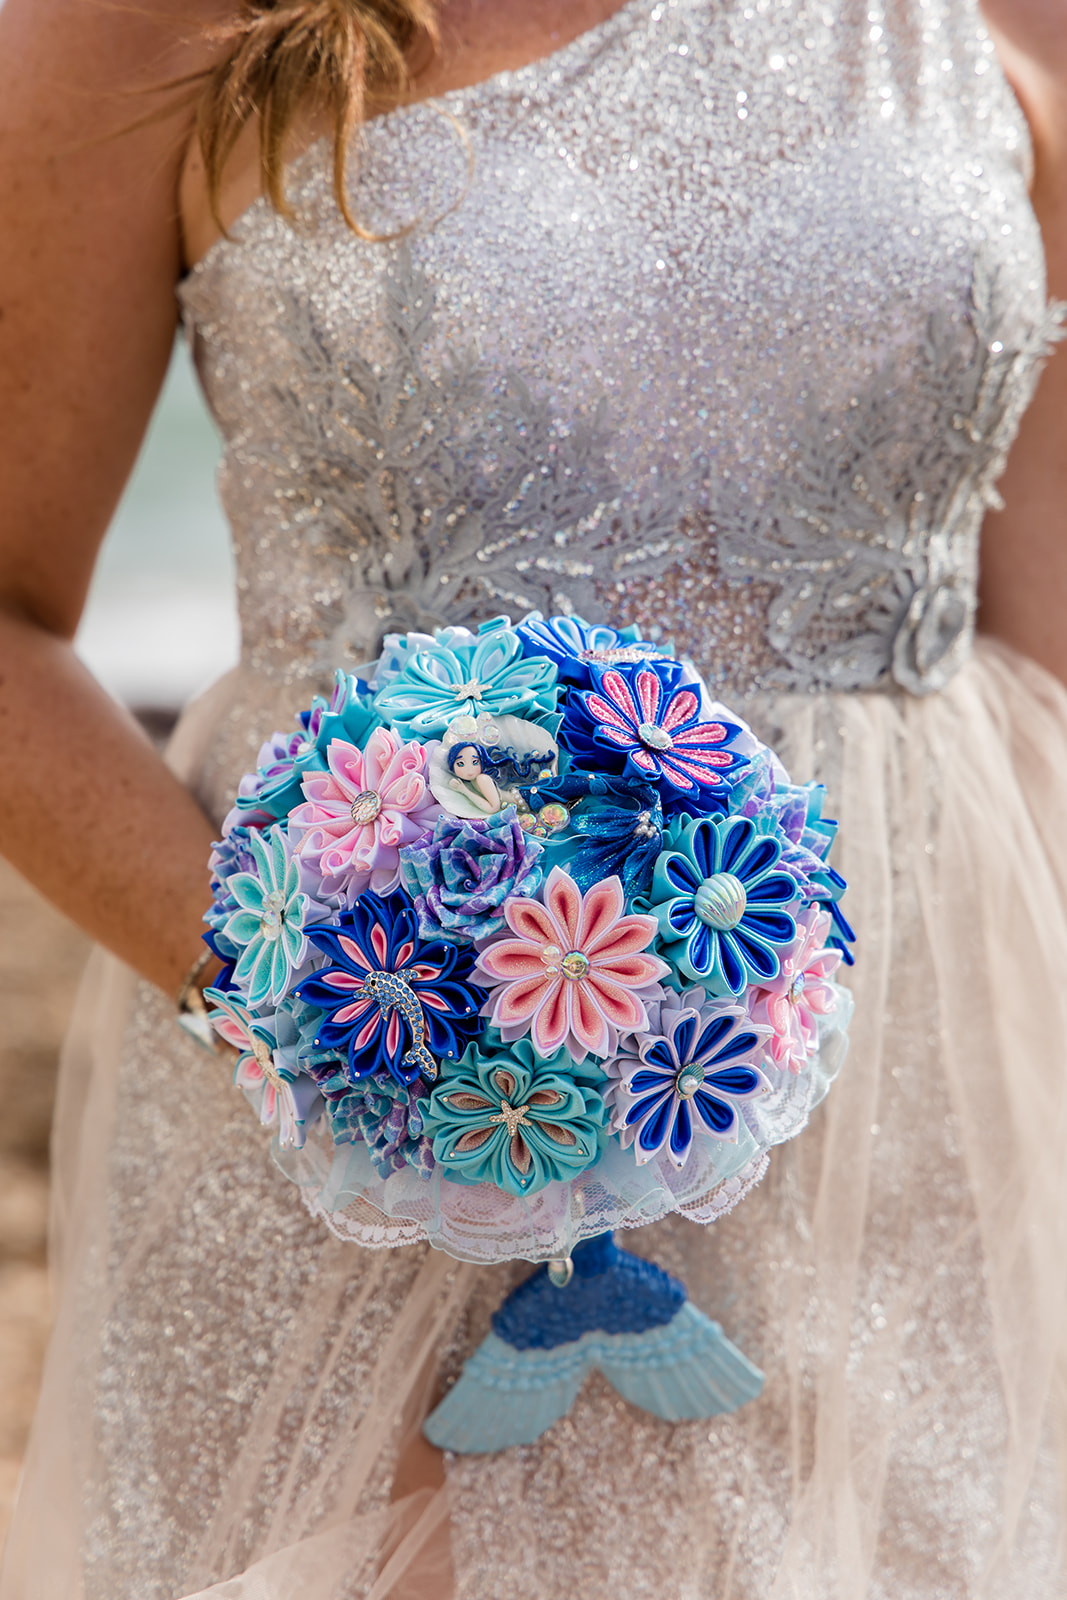 mermaid wedding - beach wedding - quirky wedding - unique wedding - alternative seaside wedding - alternative wedding - mermaid bouquet - alternative bouquet